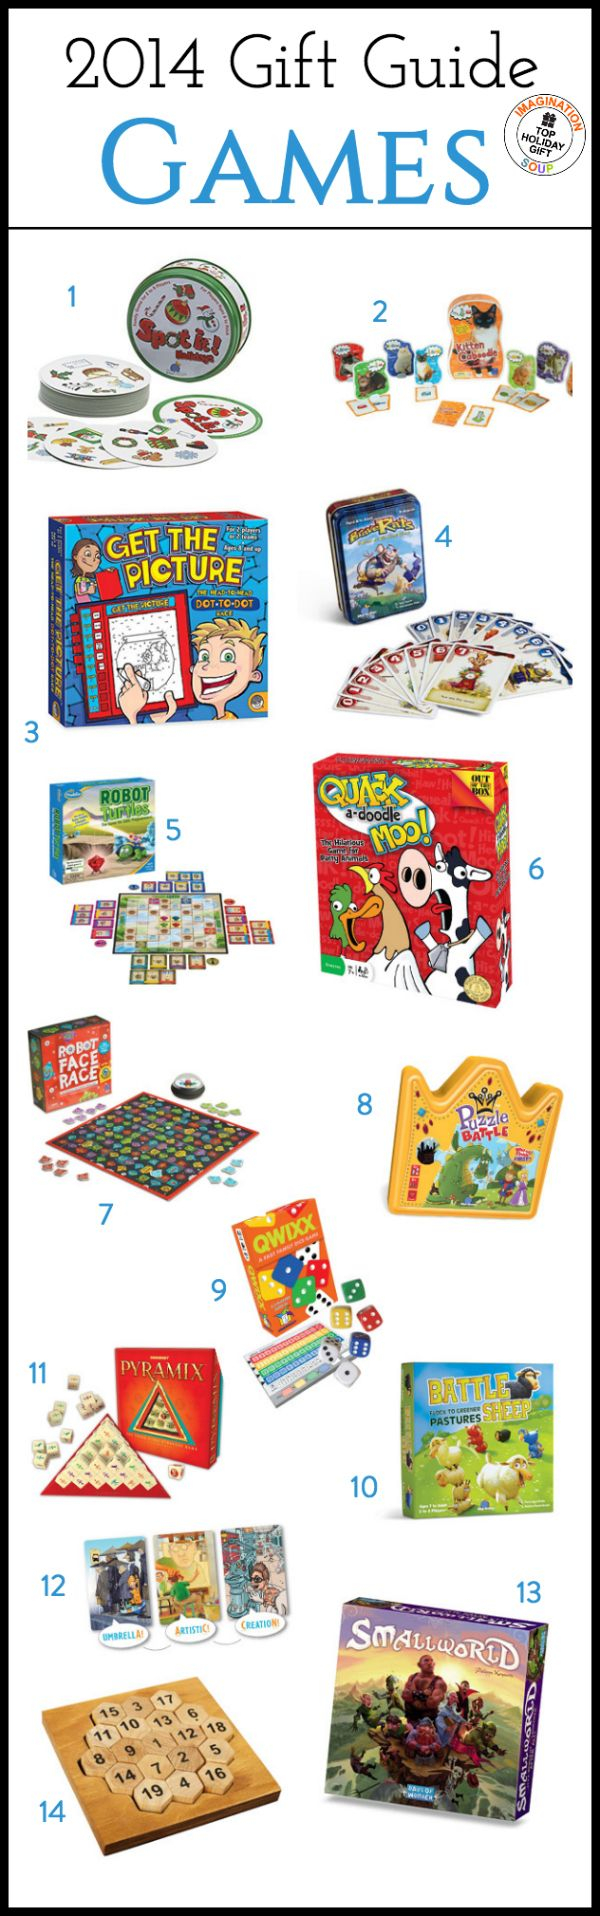 From card games to board games, there are the best learning games for kids from 2014. All are educational games that make kids think, use strategies, solve problems, and improve skills.